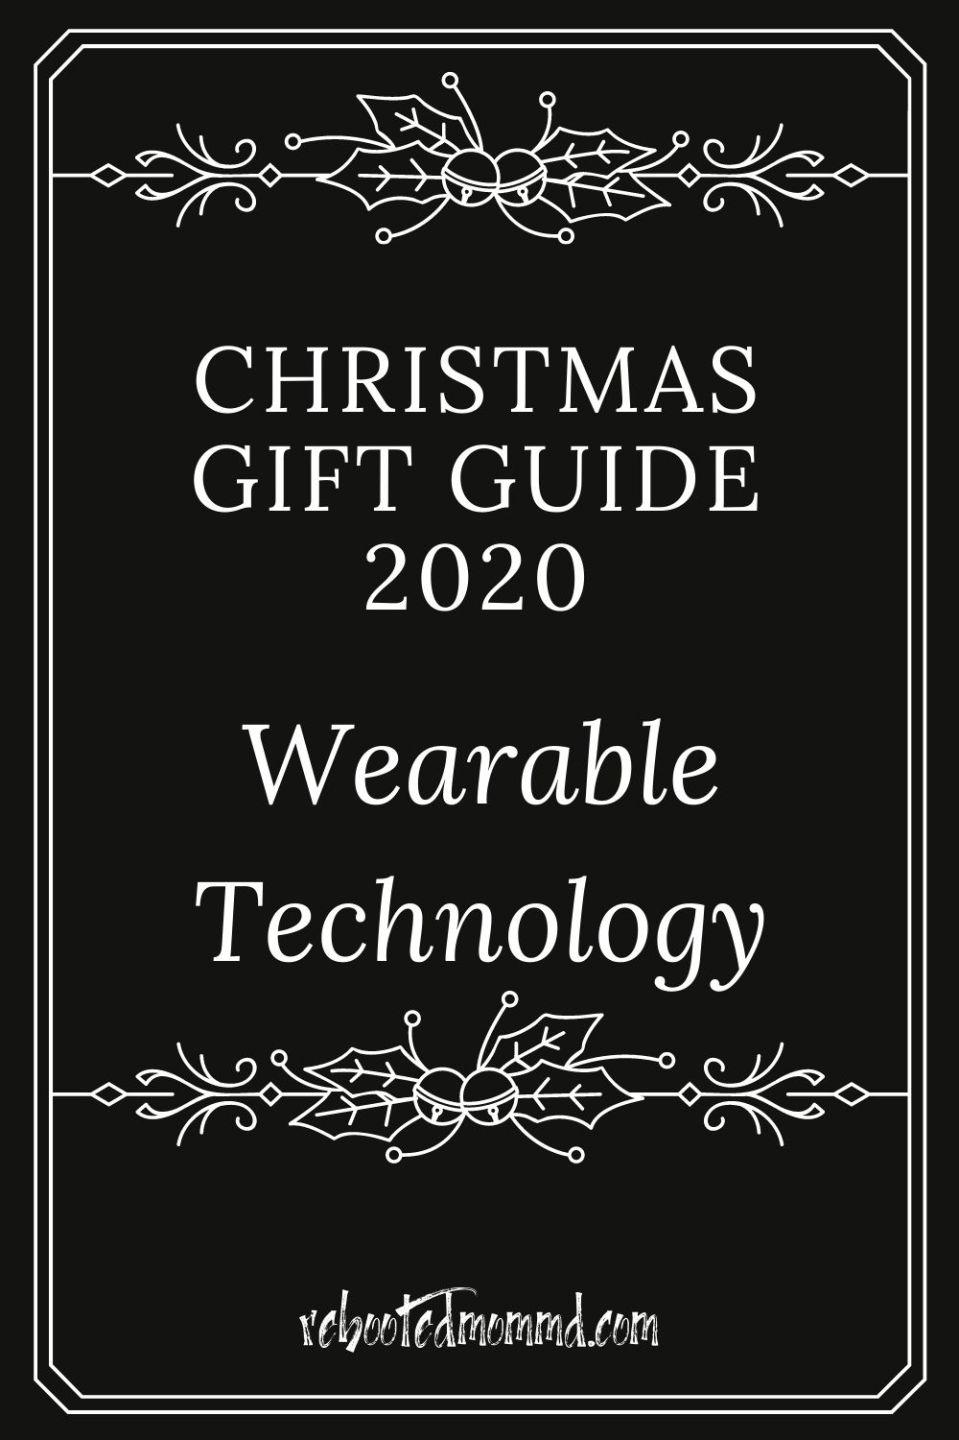 Christmas Gift Guide 2020: Wearable Technology